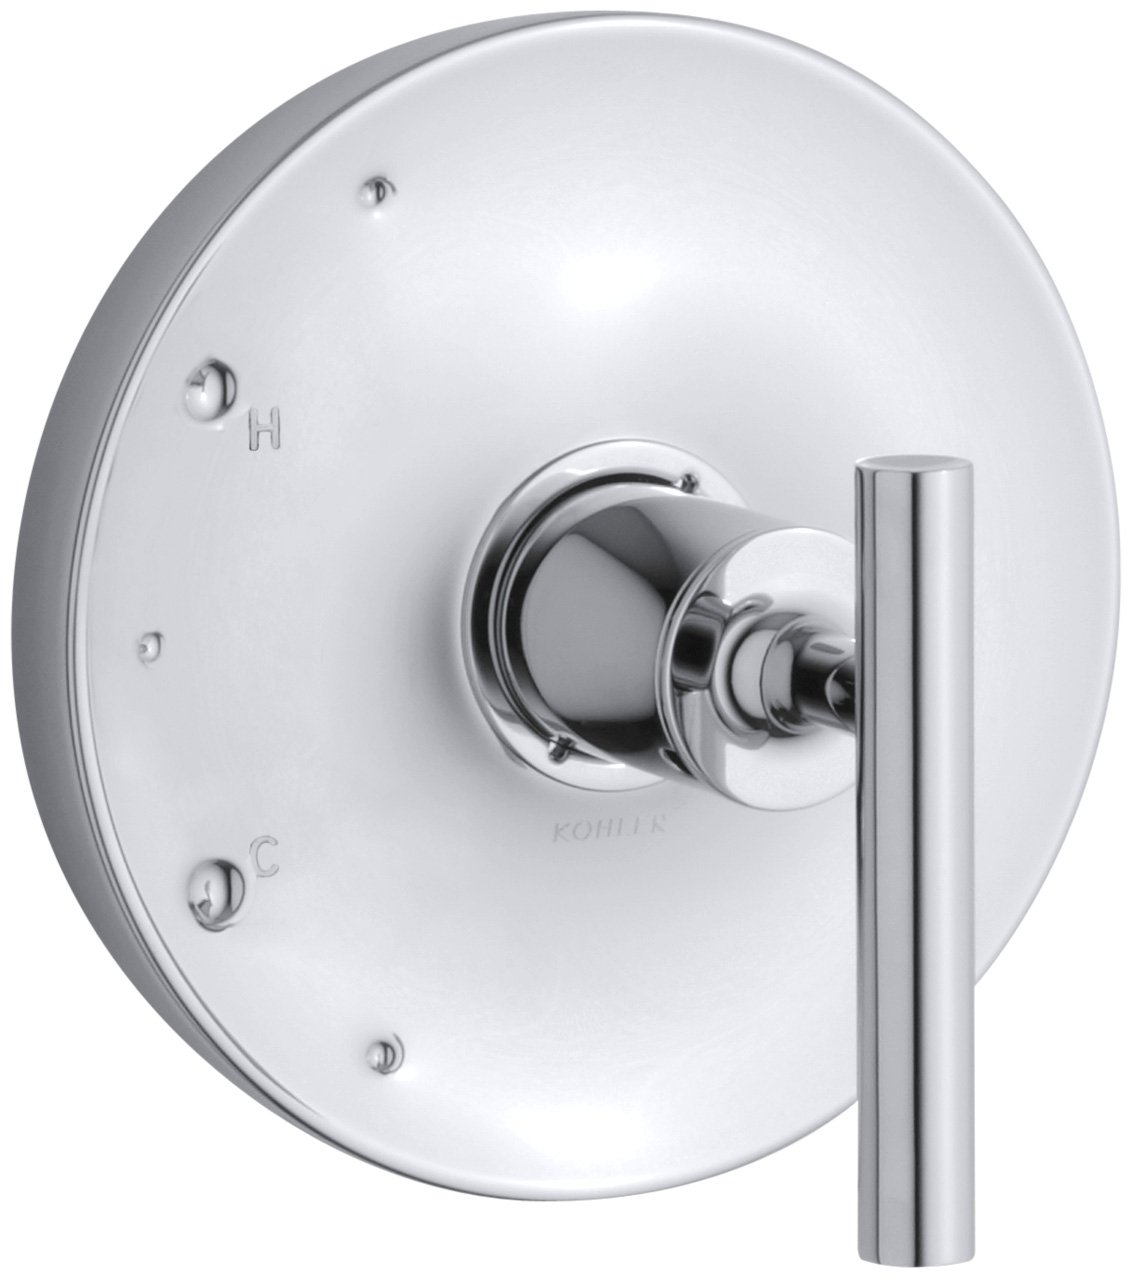 KOHLER K-T14423-4-CP Purist Rite-Temp Valve Trim, Polished Chrome ... - KOHLER K-T14423-4-CP Purist Rite-Temp Valve Trim, Polished Chrome - Faucet  Handles - Amazon.com